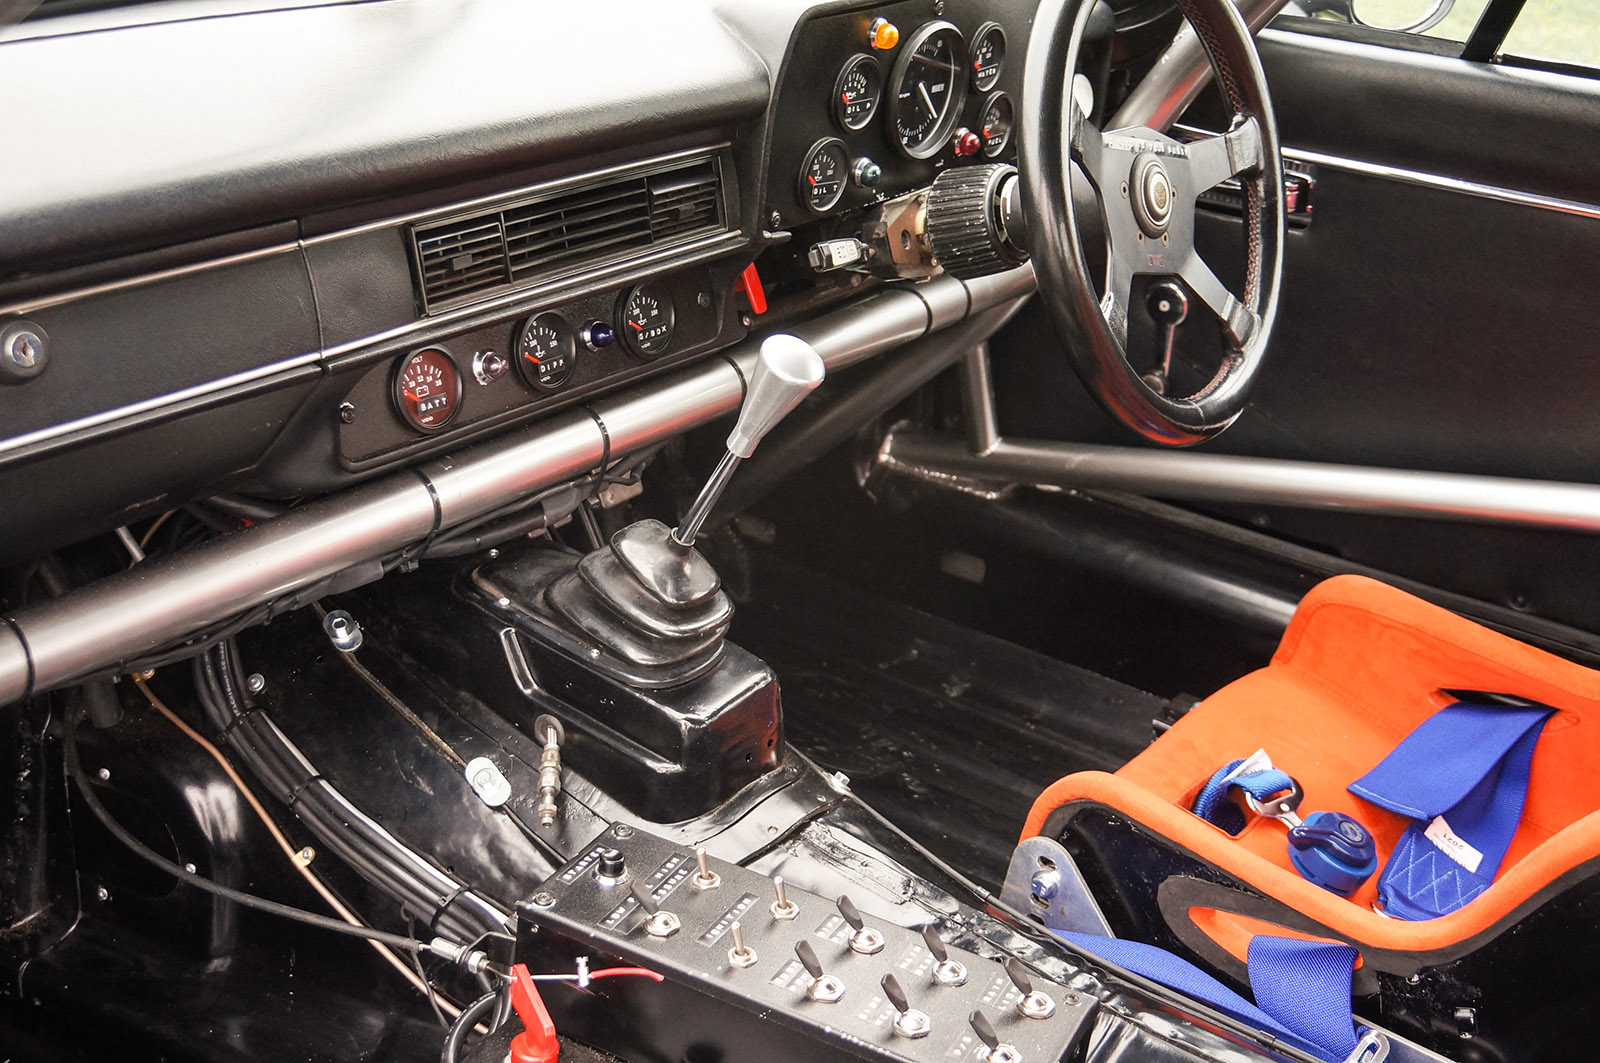 jaguar_twr_xjs_walkinshaw_wilkinson_sayer_selection_scragg_interior_console_steering_wheel.jpg